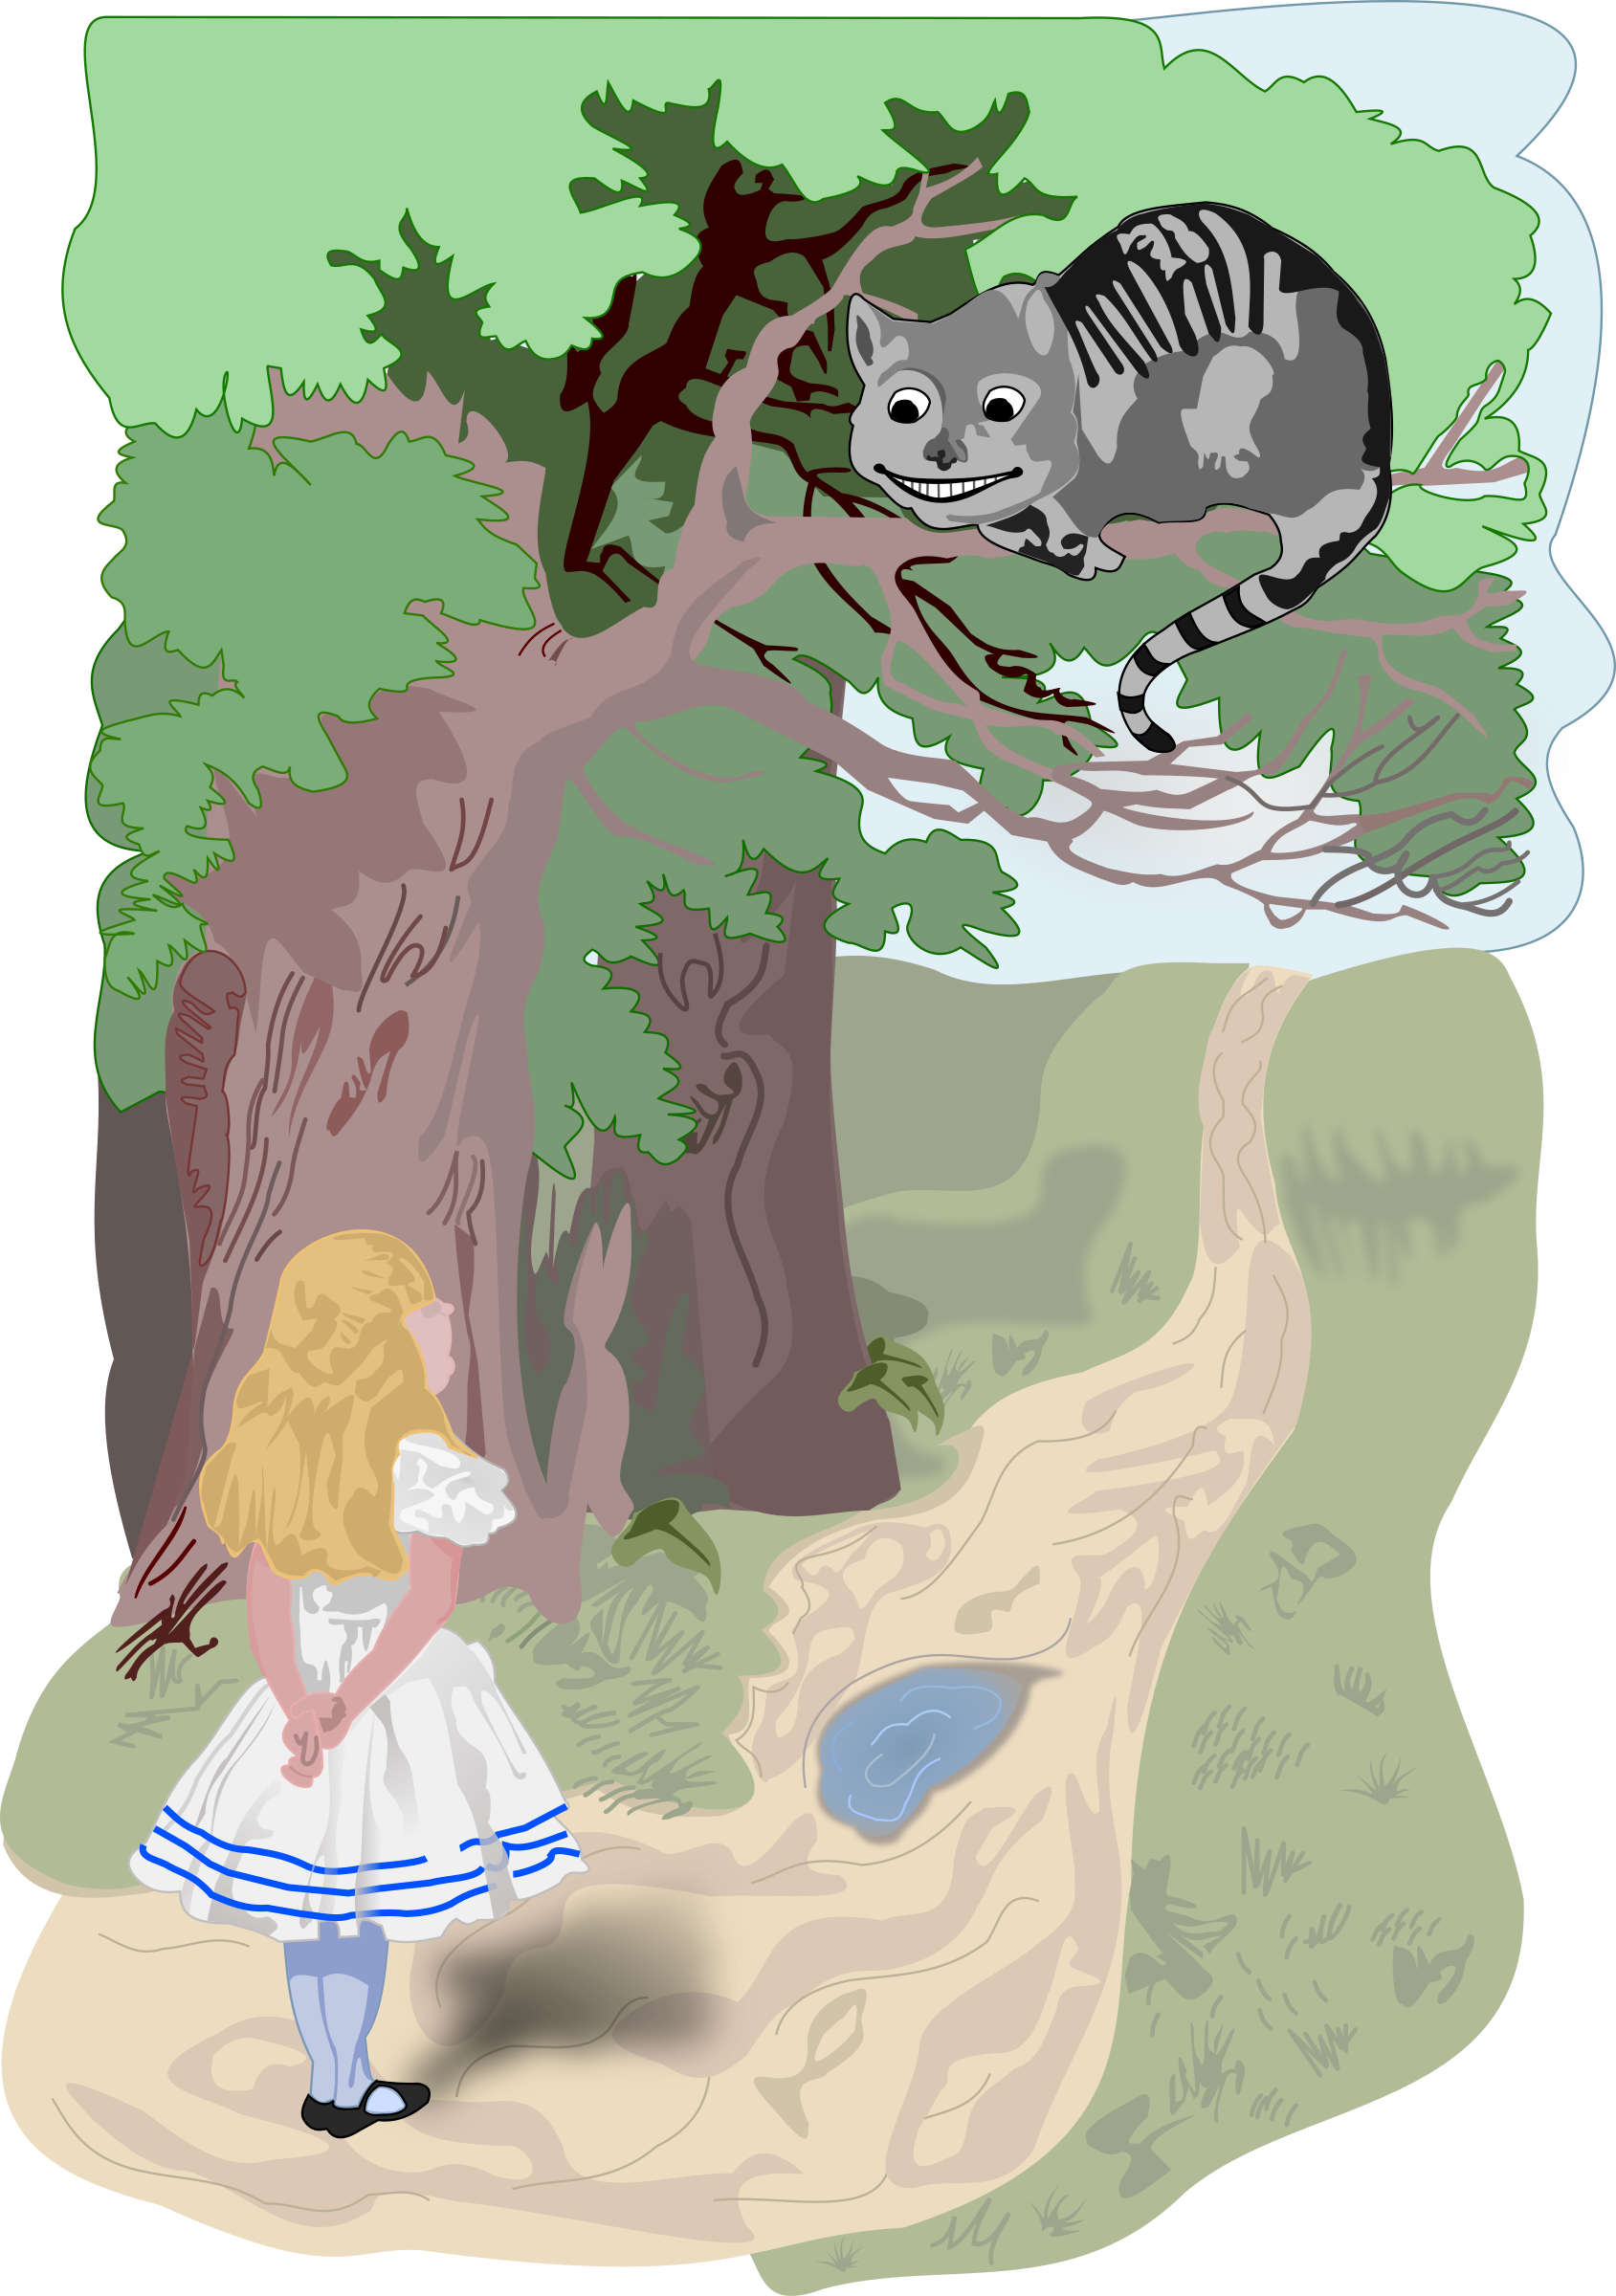 Alice and the Cheshire Cat by frankes